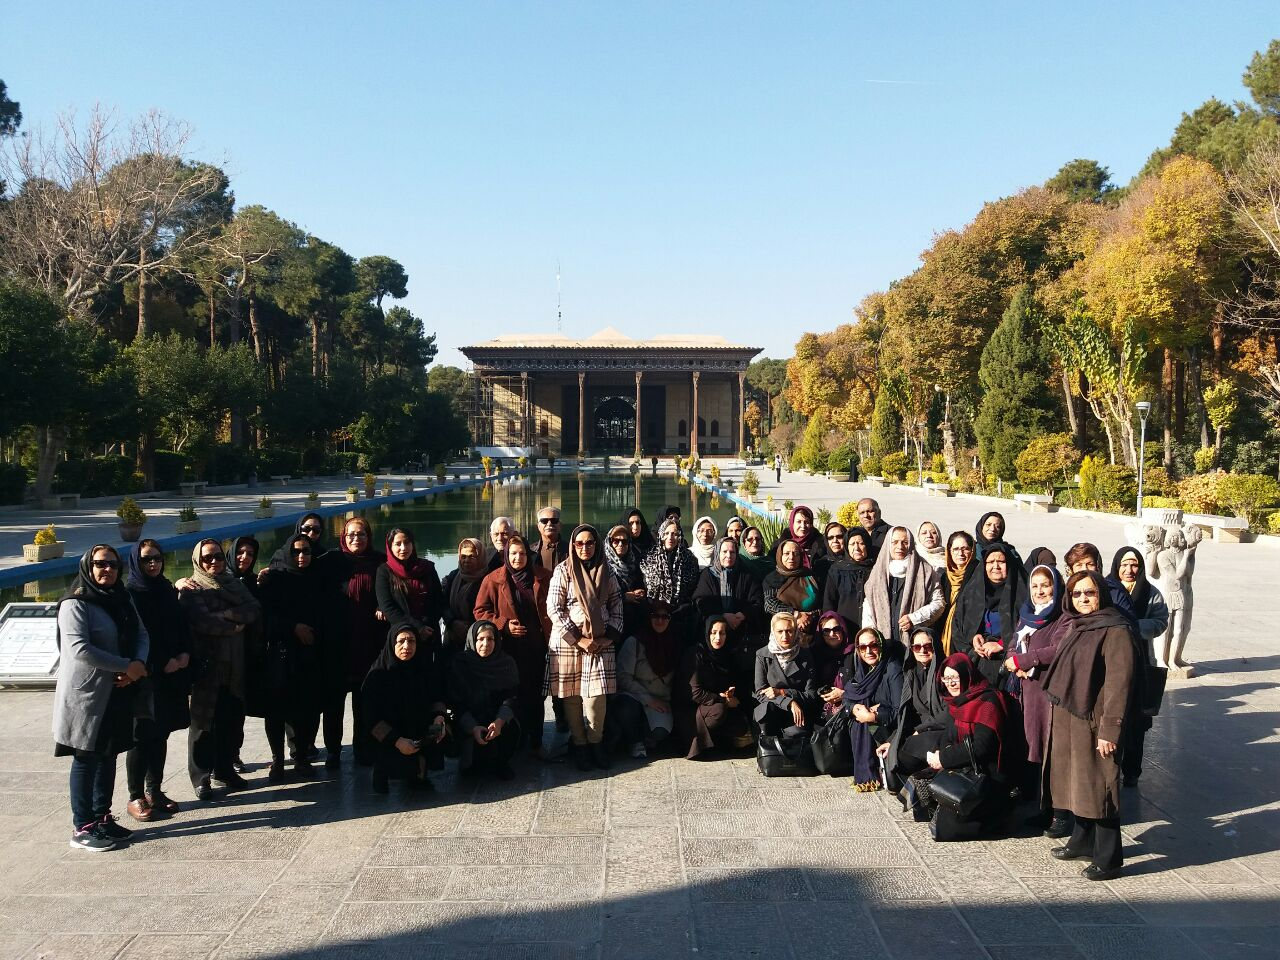 The University of the Third Age (U3A) in Iran: a Model for Successful Ageing